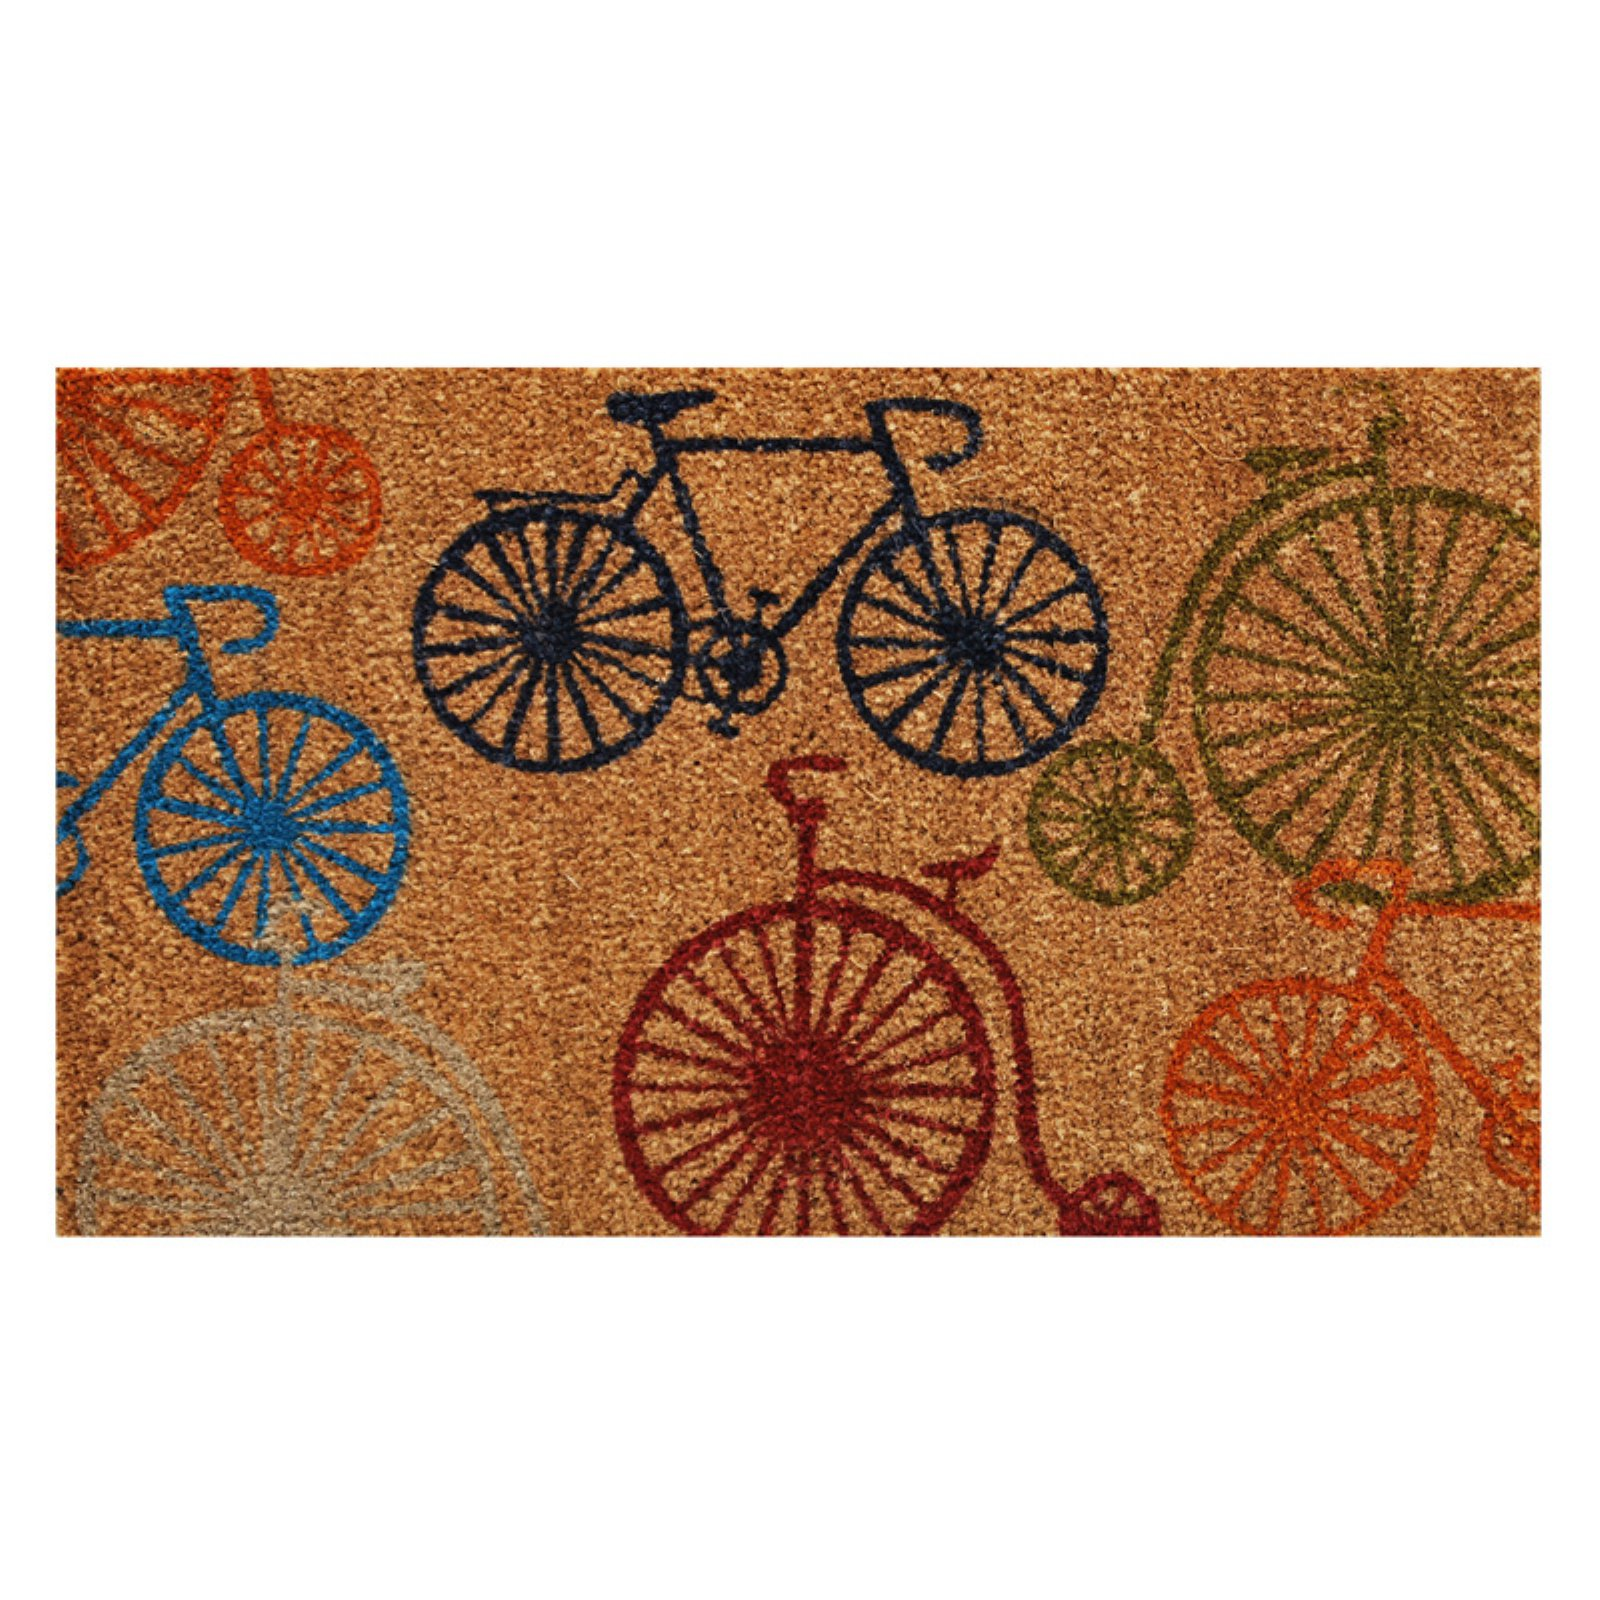 Home & More Bicycles Doormat